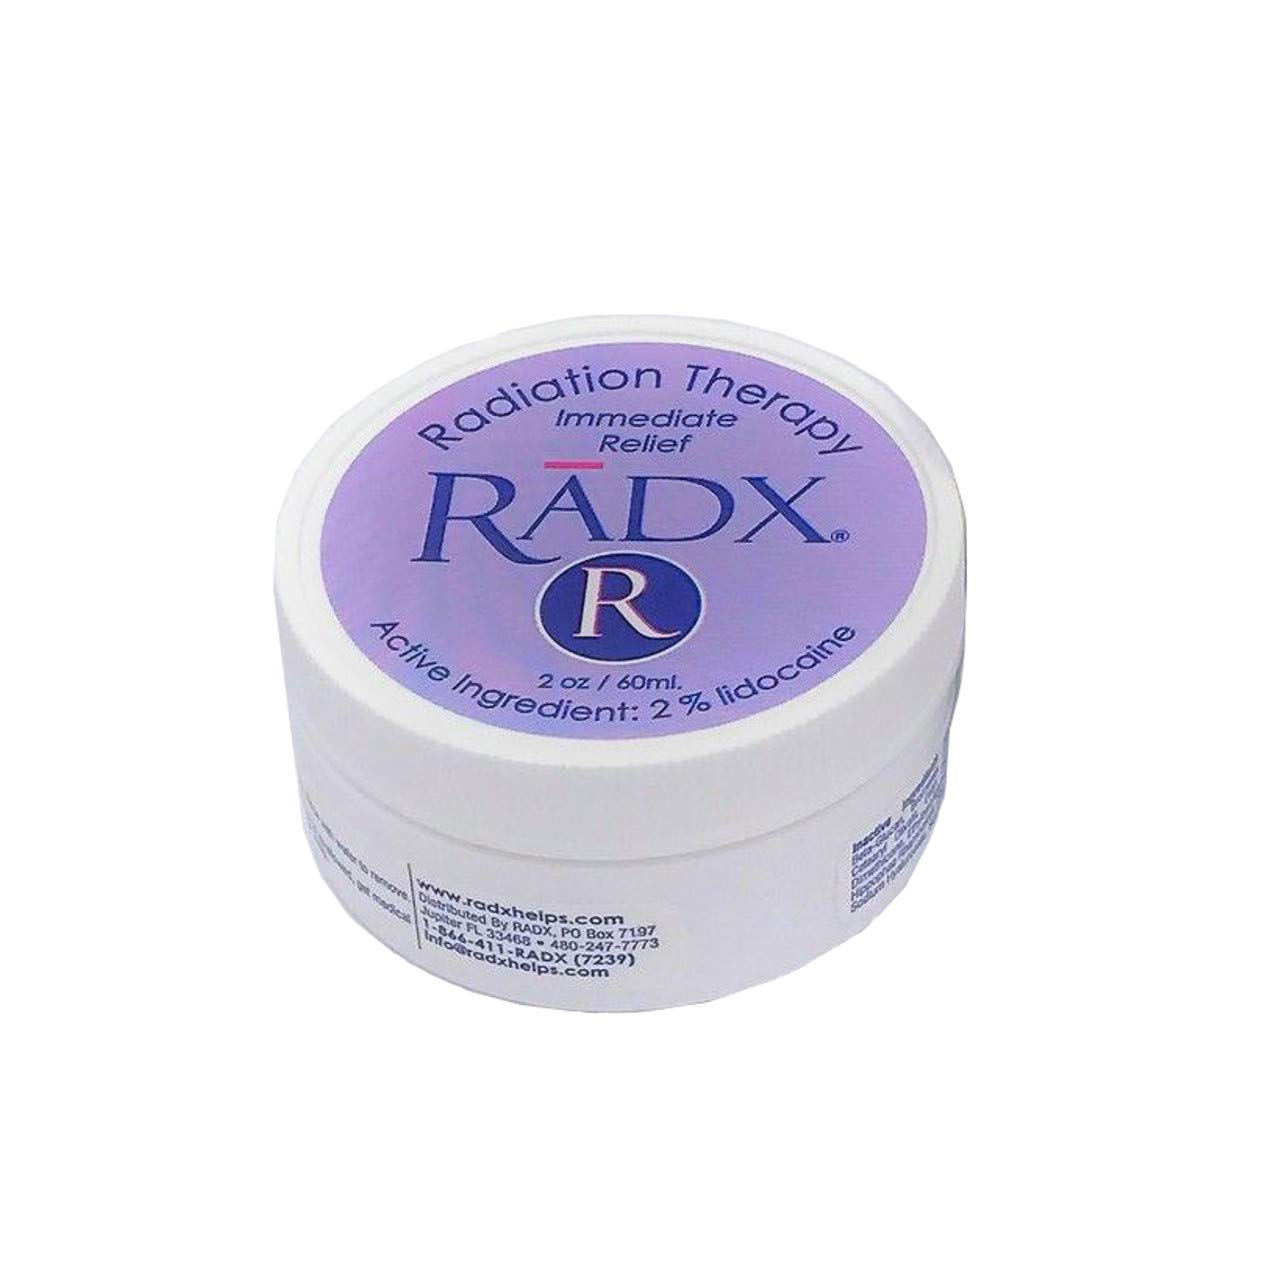 Radx - Oncology Therapy Cream with 2% Lidocaine, Burn Relief, Chemo and Radiation Skin Care - 2 Ounce jar